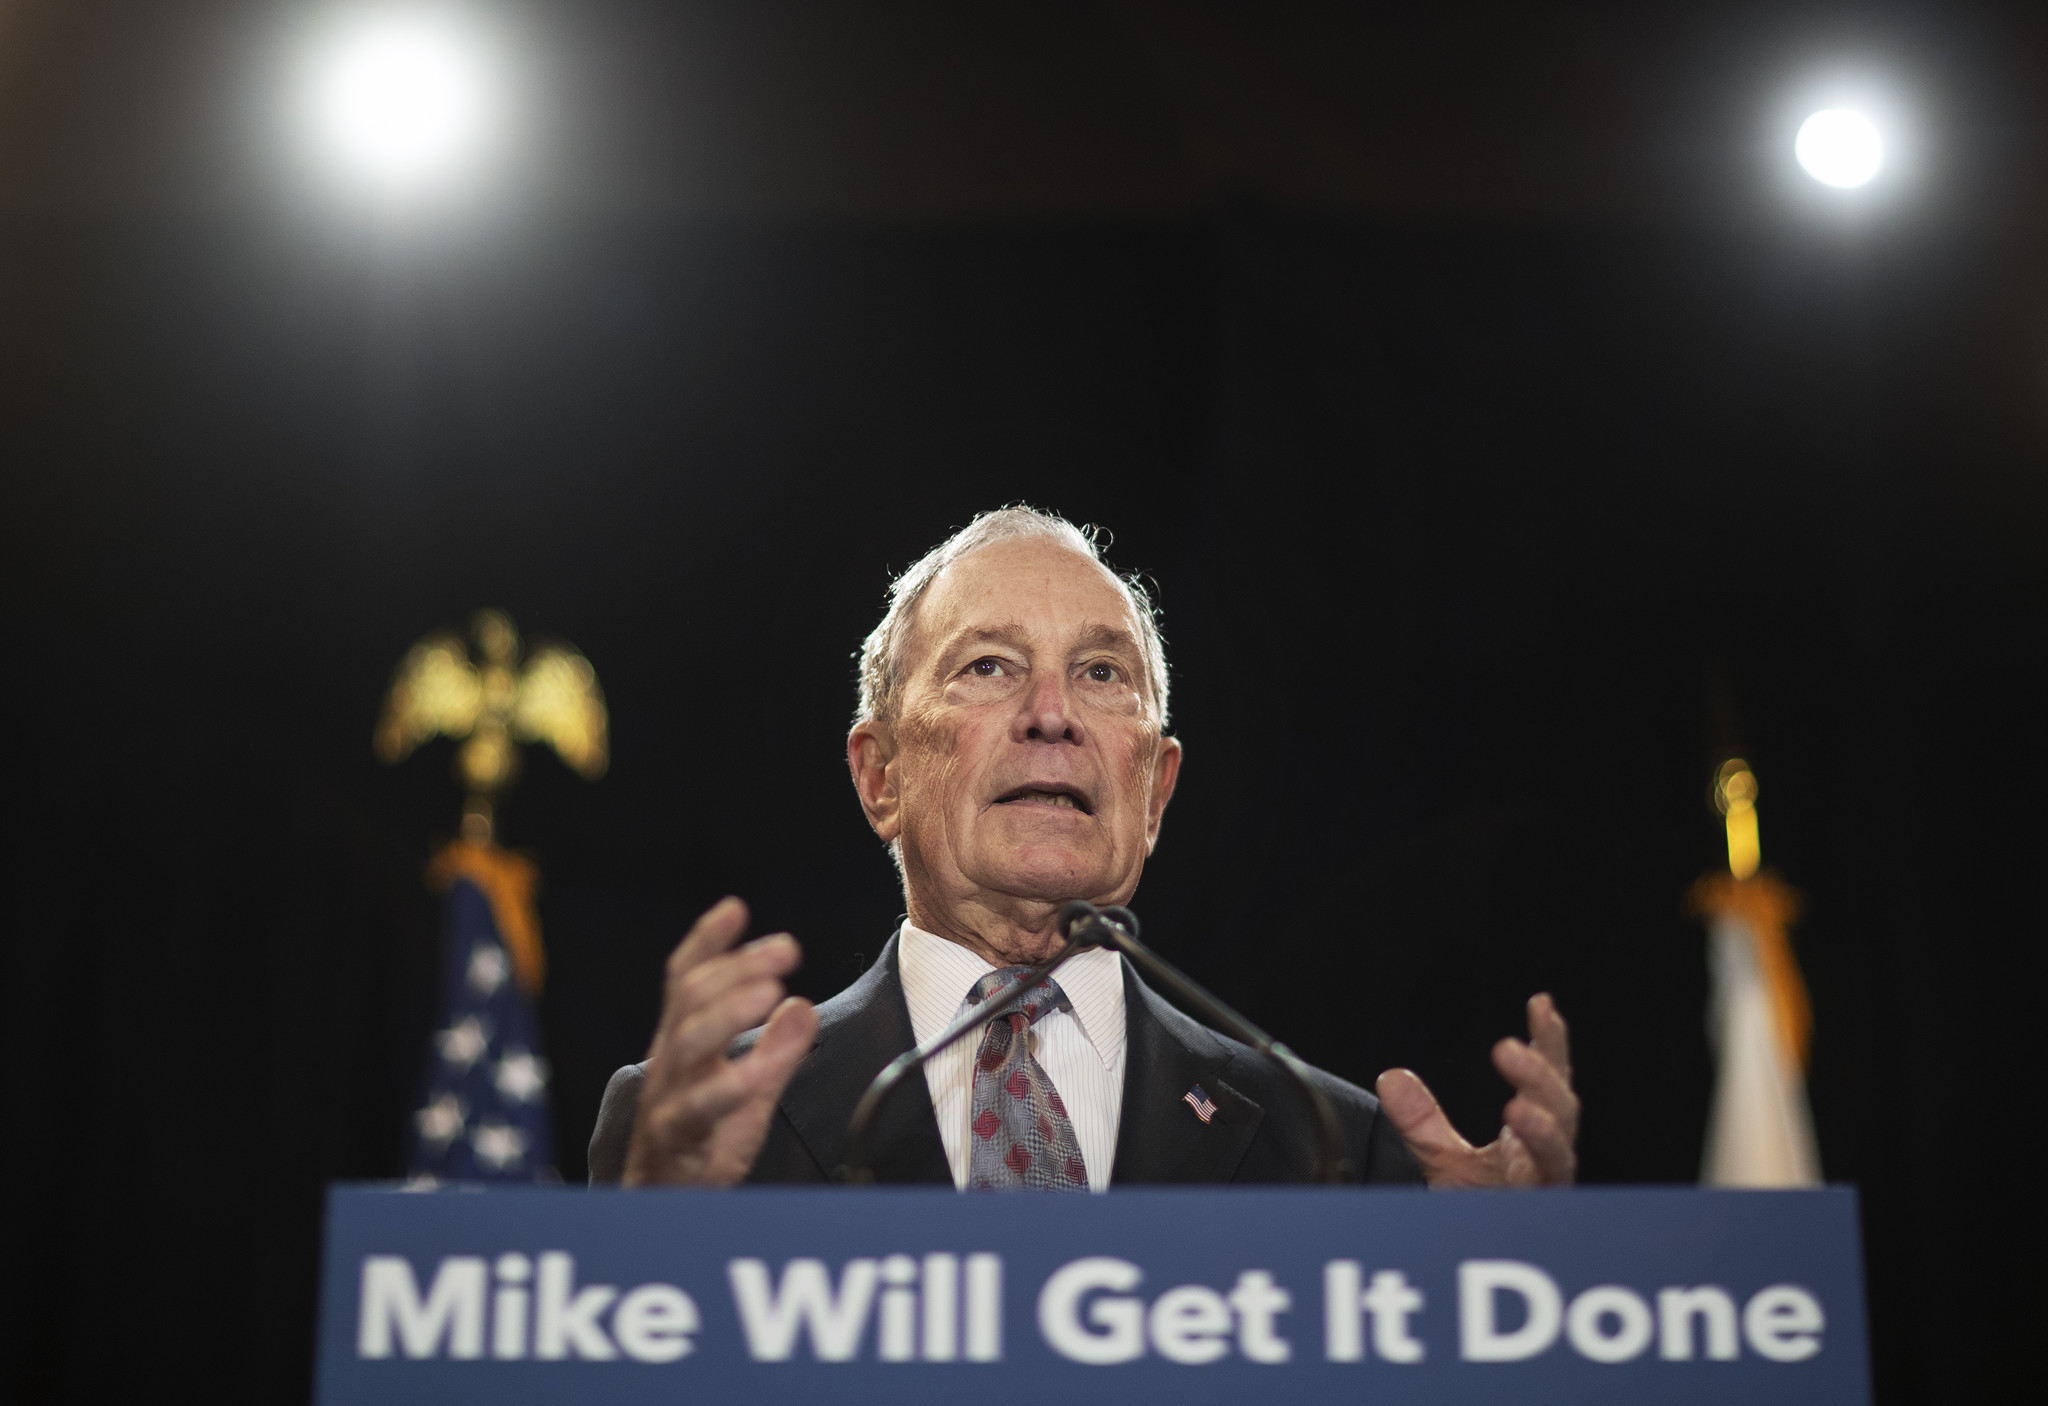 Slouching towards Bloomberg? Mike's similarities to Trump are too glaring to ignore